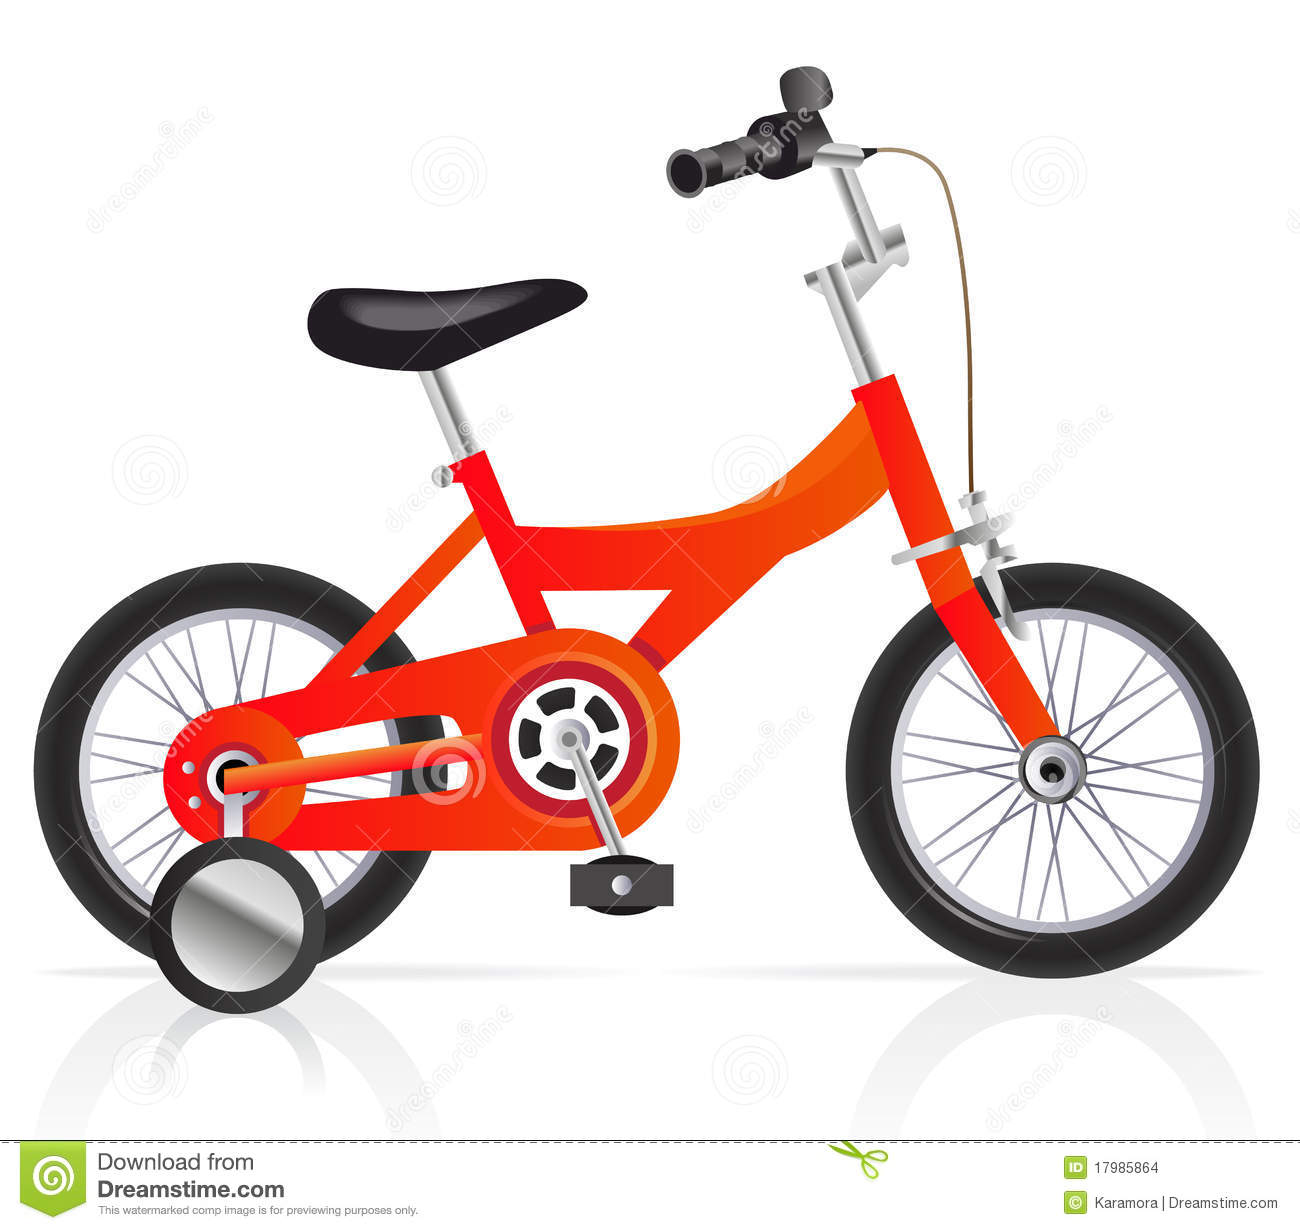 Child's bike clipart - Clipground